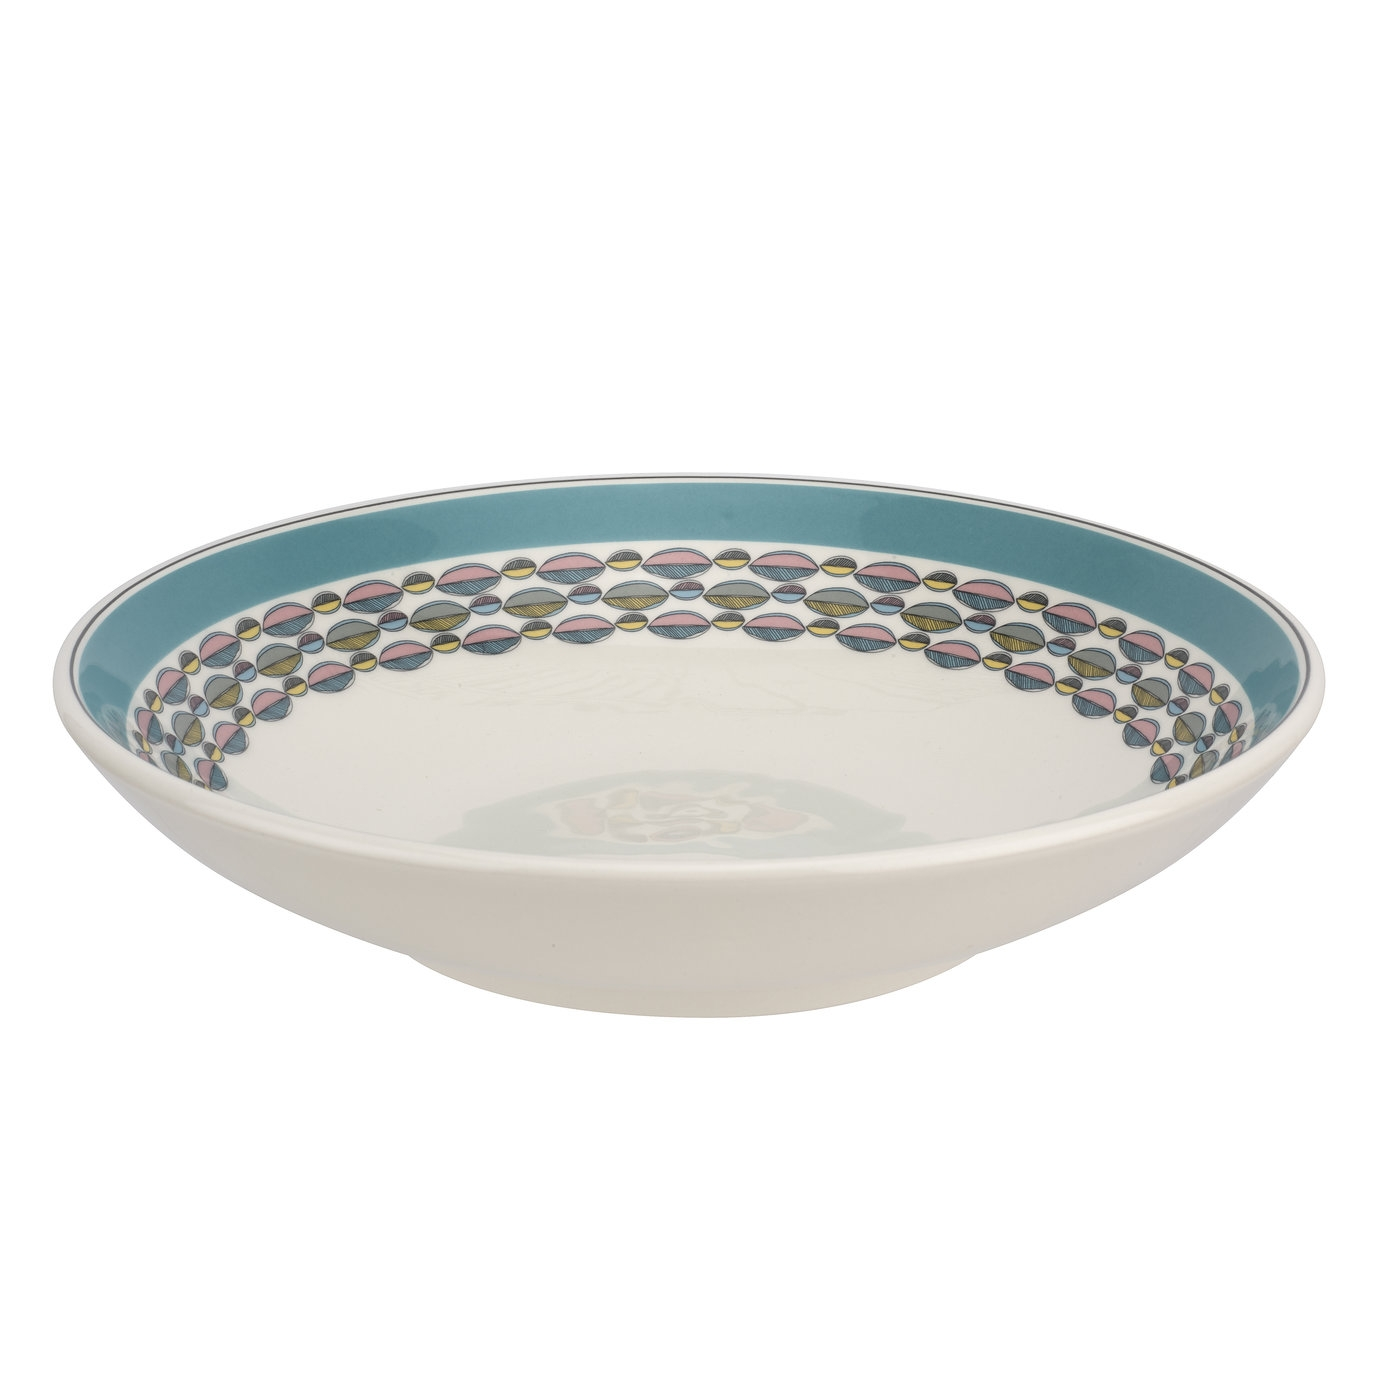 Portmeirion Westerly Turquoise Low Pasta Bowl image number 0